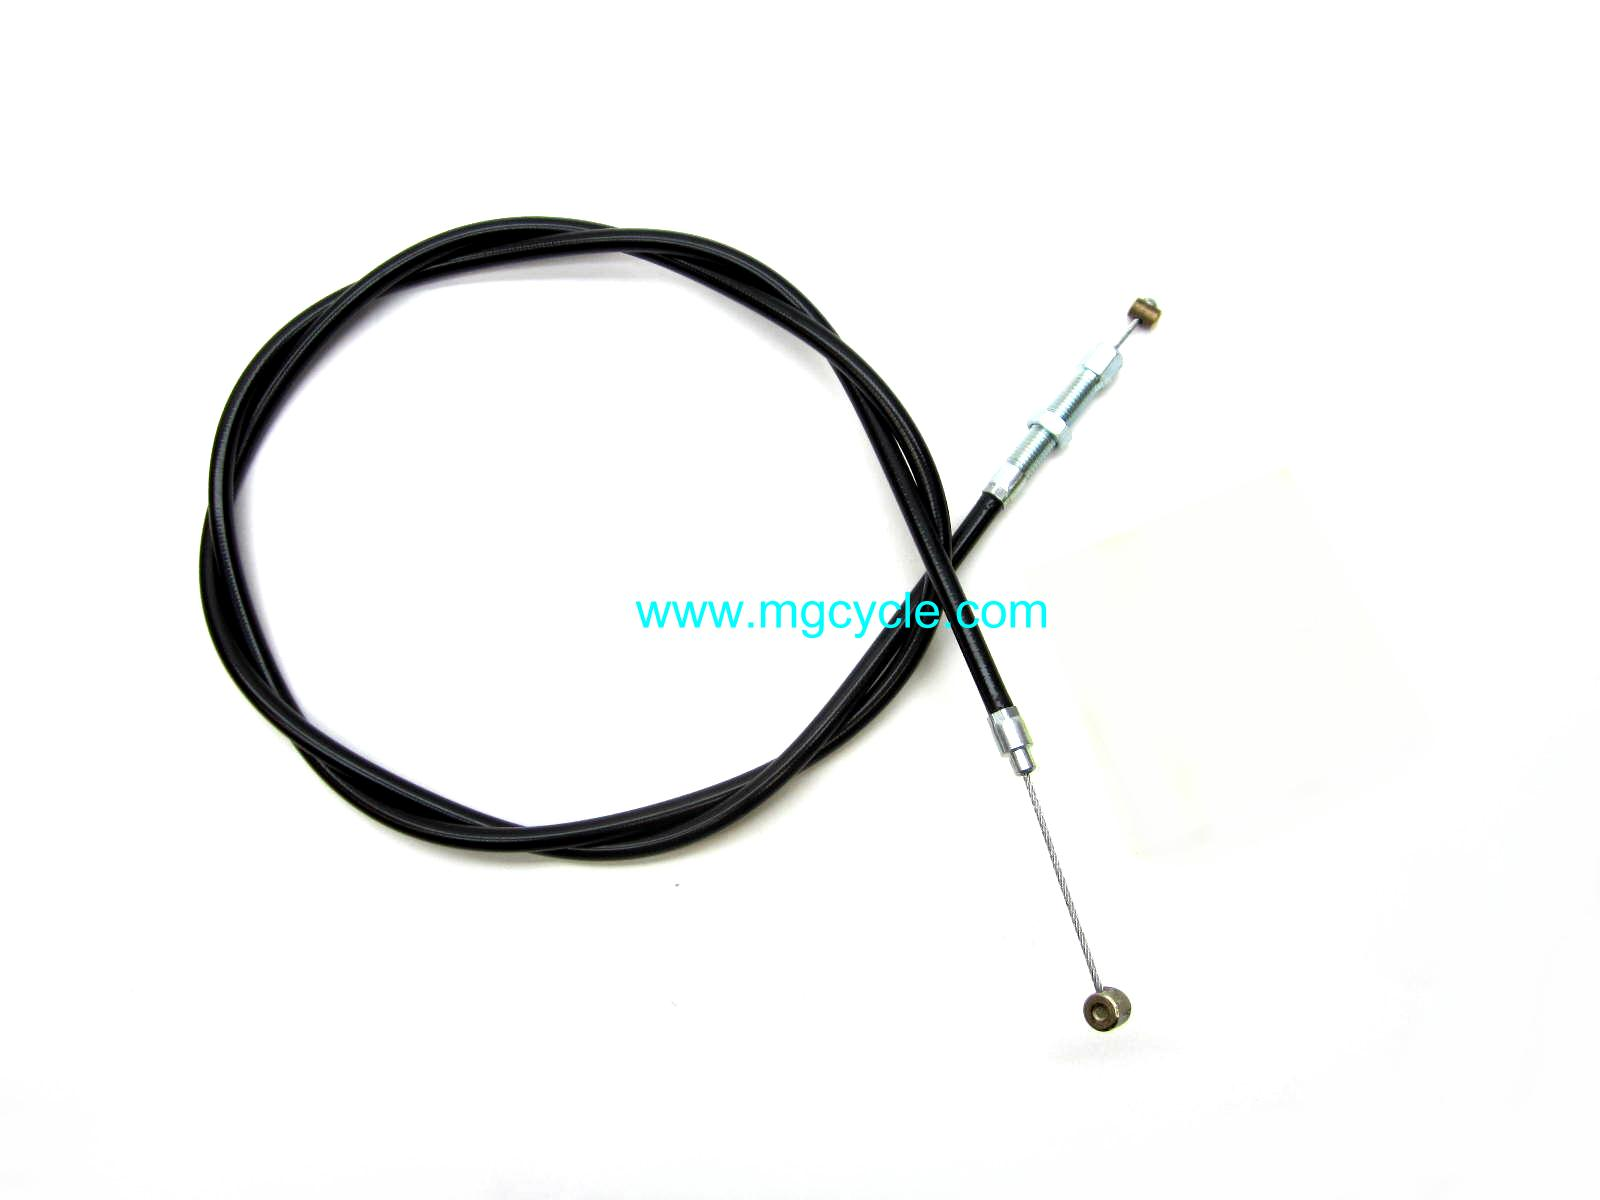 Clutch cable V700 and Ambassador, longer Police length